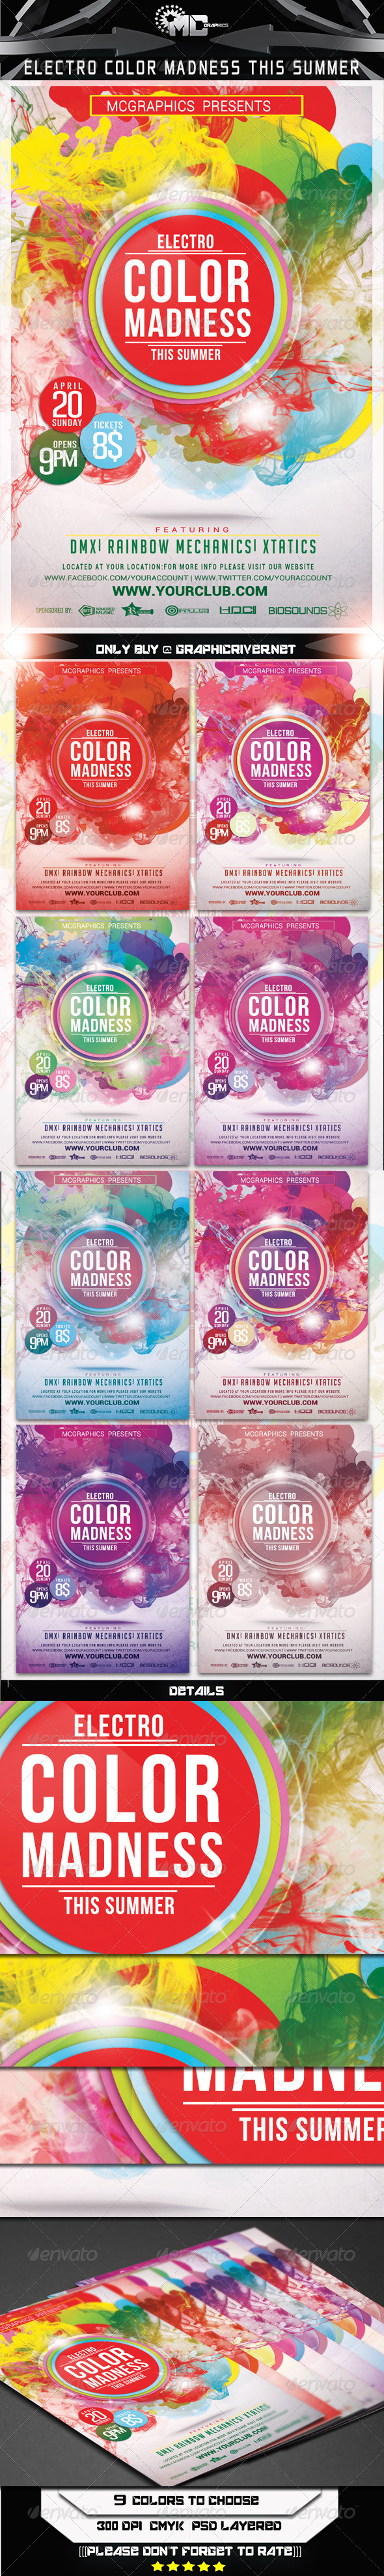 GraphicRiver Electro Color Madness This Summer Flyer Template 7186469